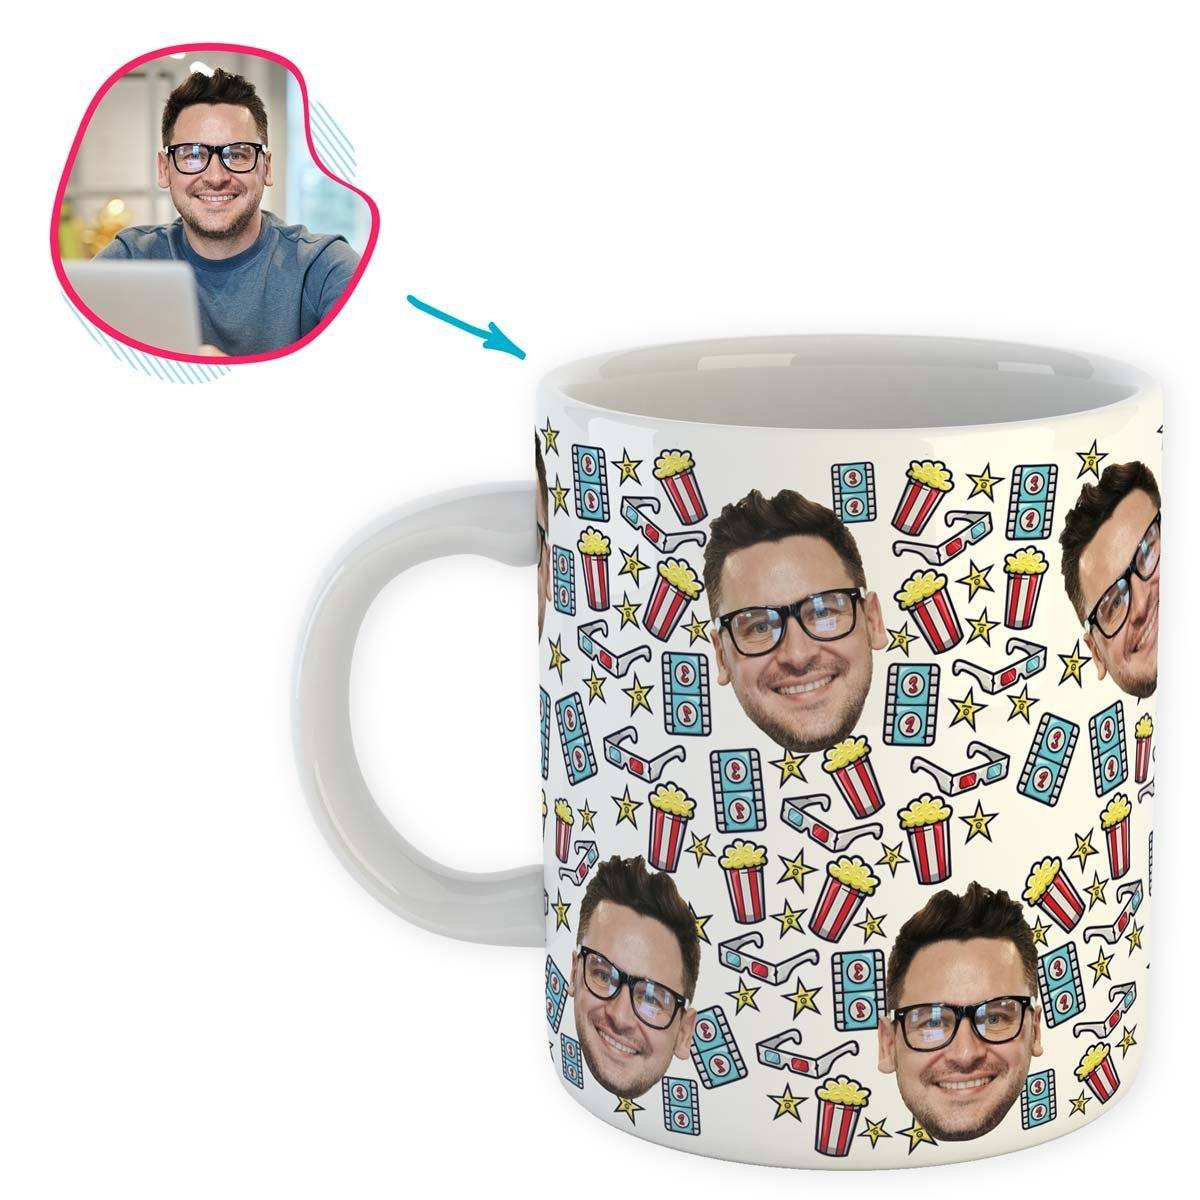 white Movie mug personalized with photo of face printed on it